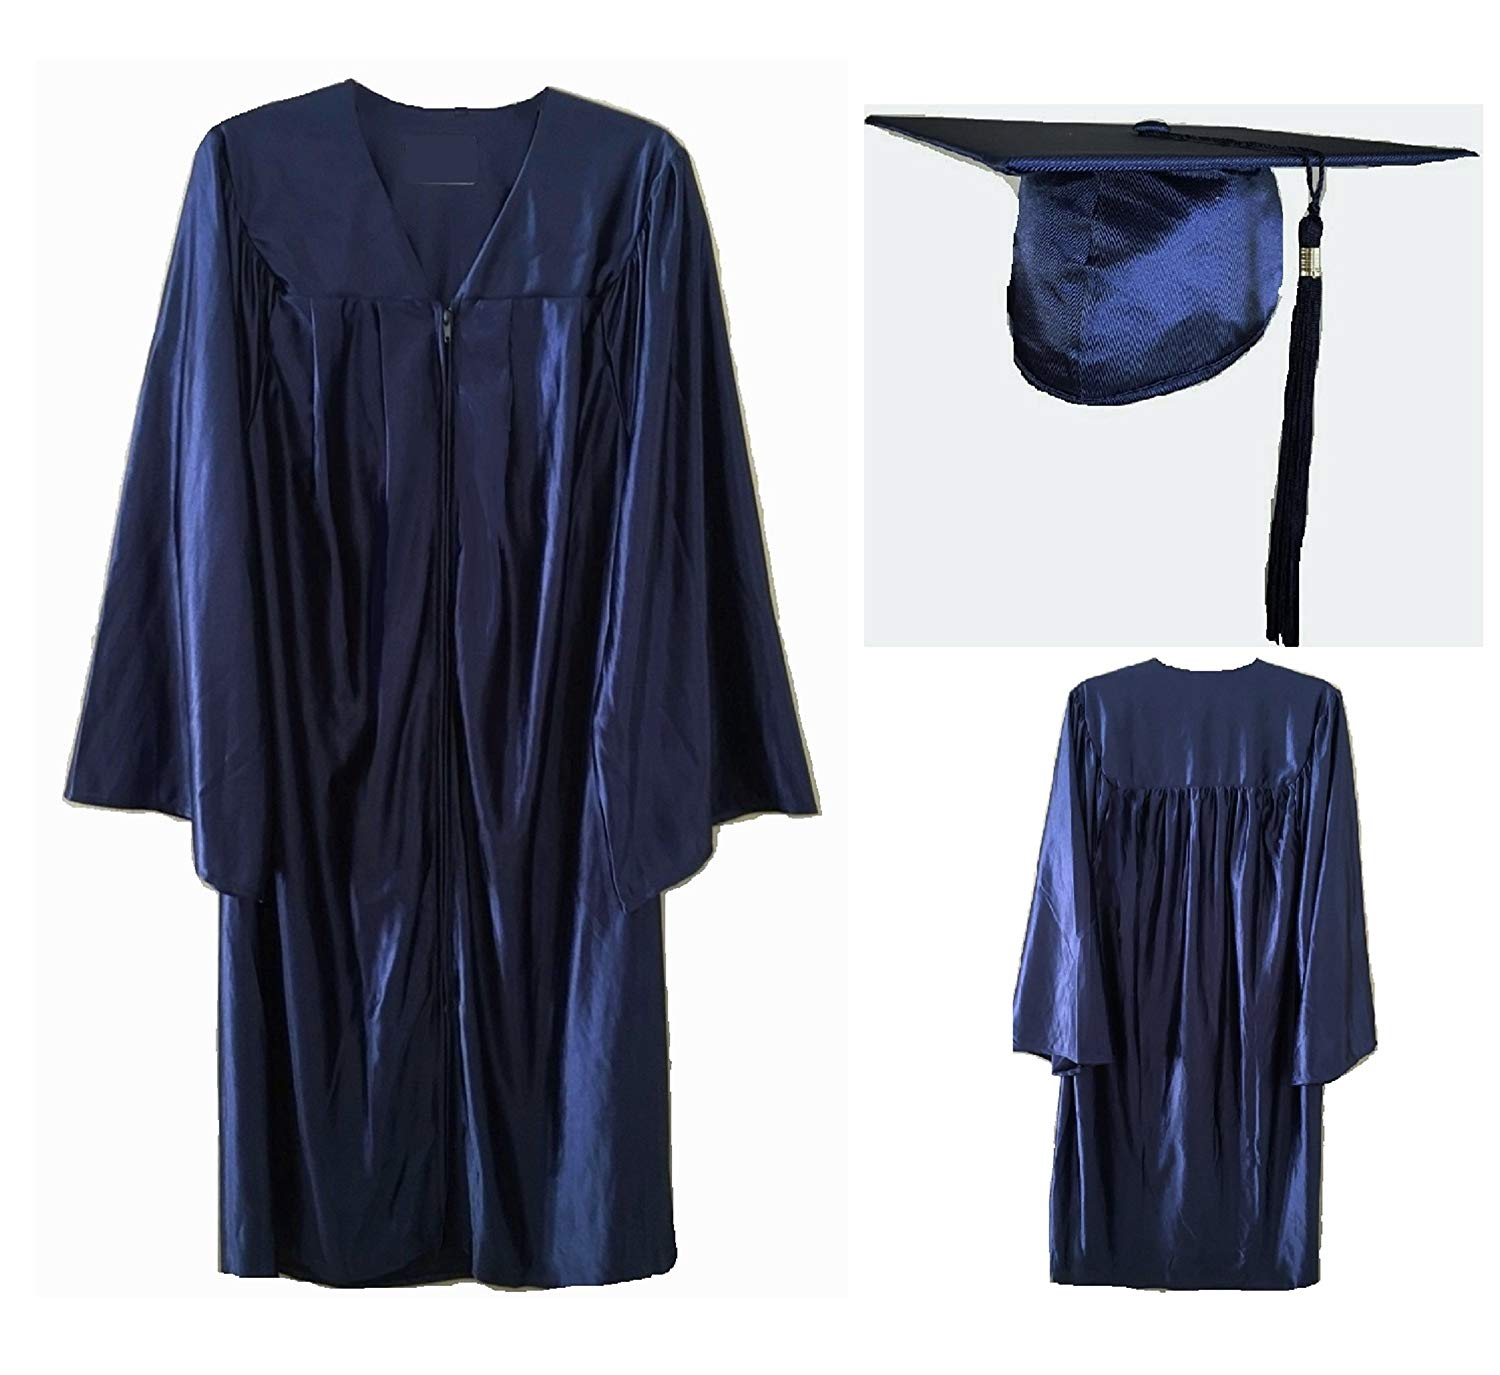 Cam High implemented navy-blue graduation gowns for both the male and female graduating class, where previously male and female gowns would have separate colors.